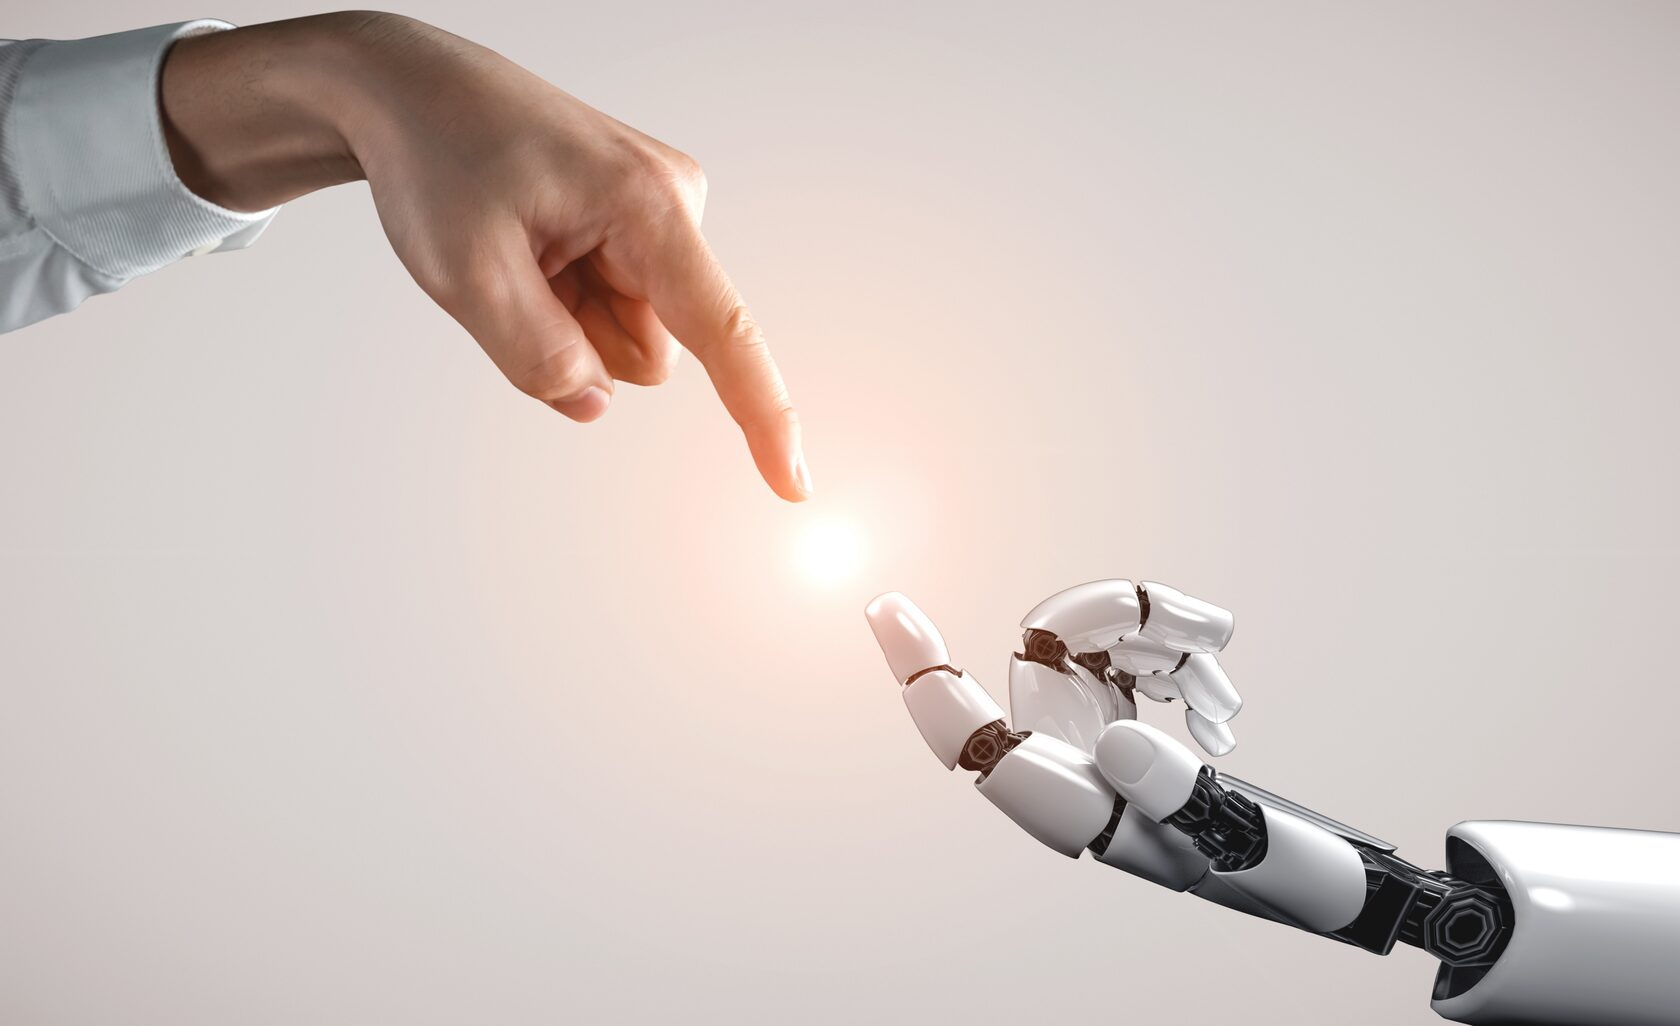 Can we trust robots and artificial intelligent therapists?